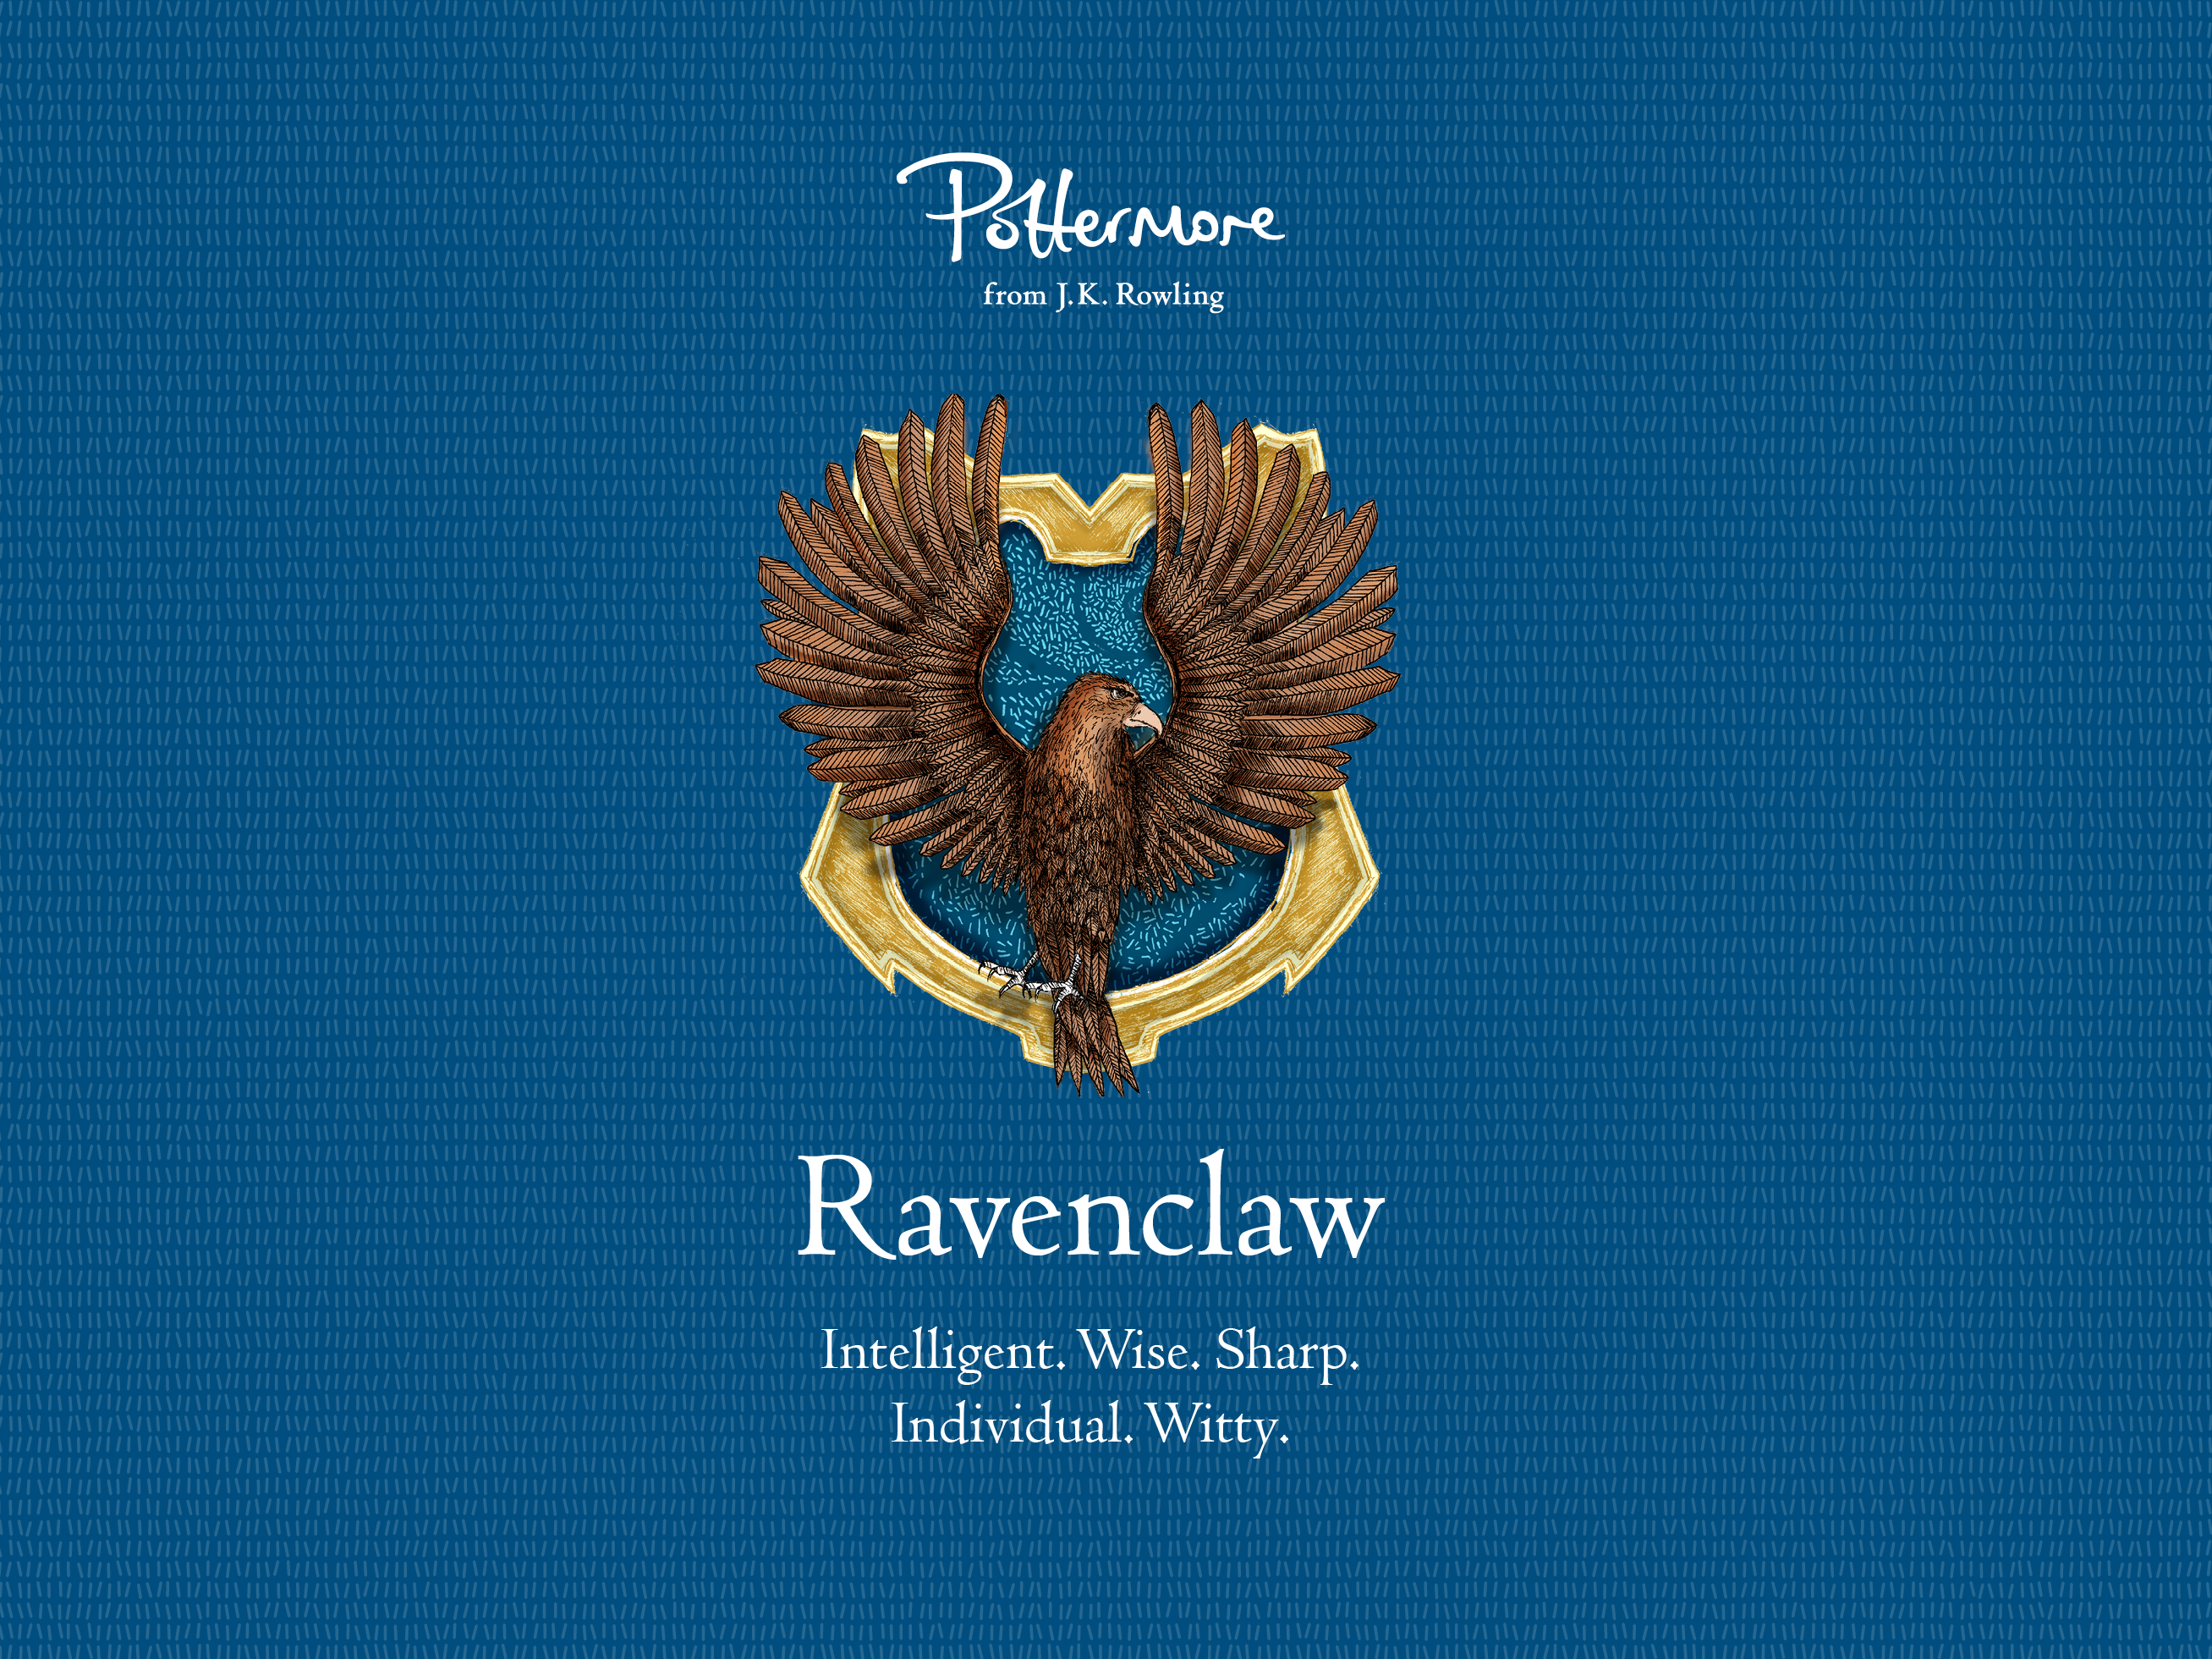 The best feature on J.K. Rowling's Pottermore website is